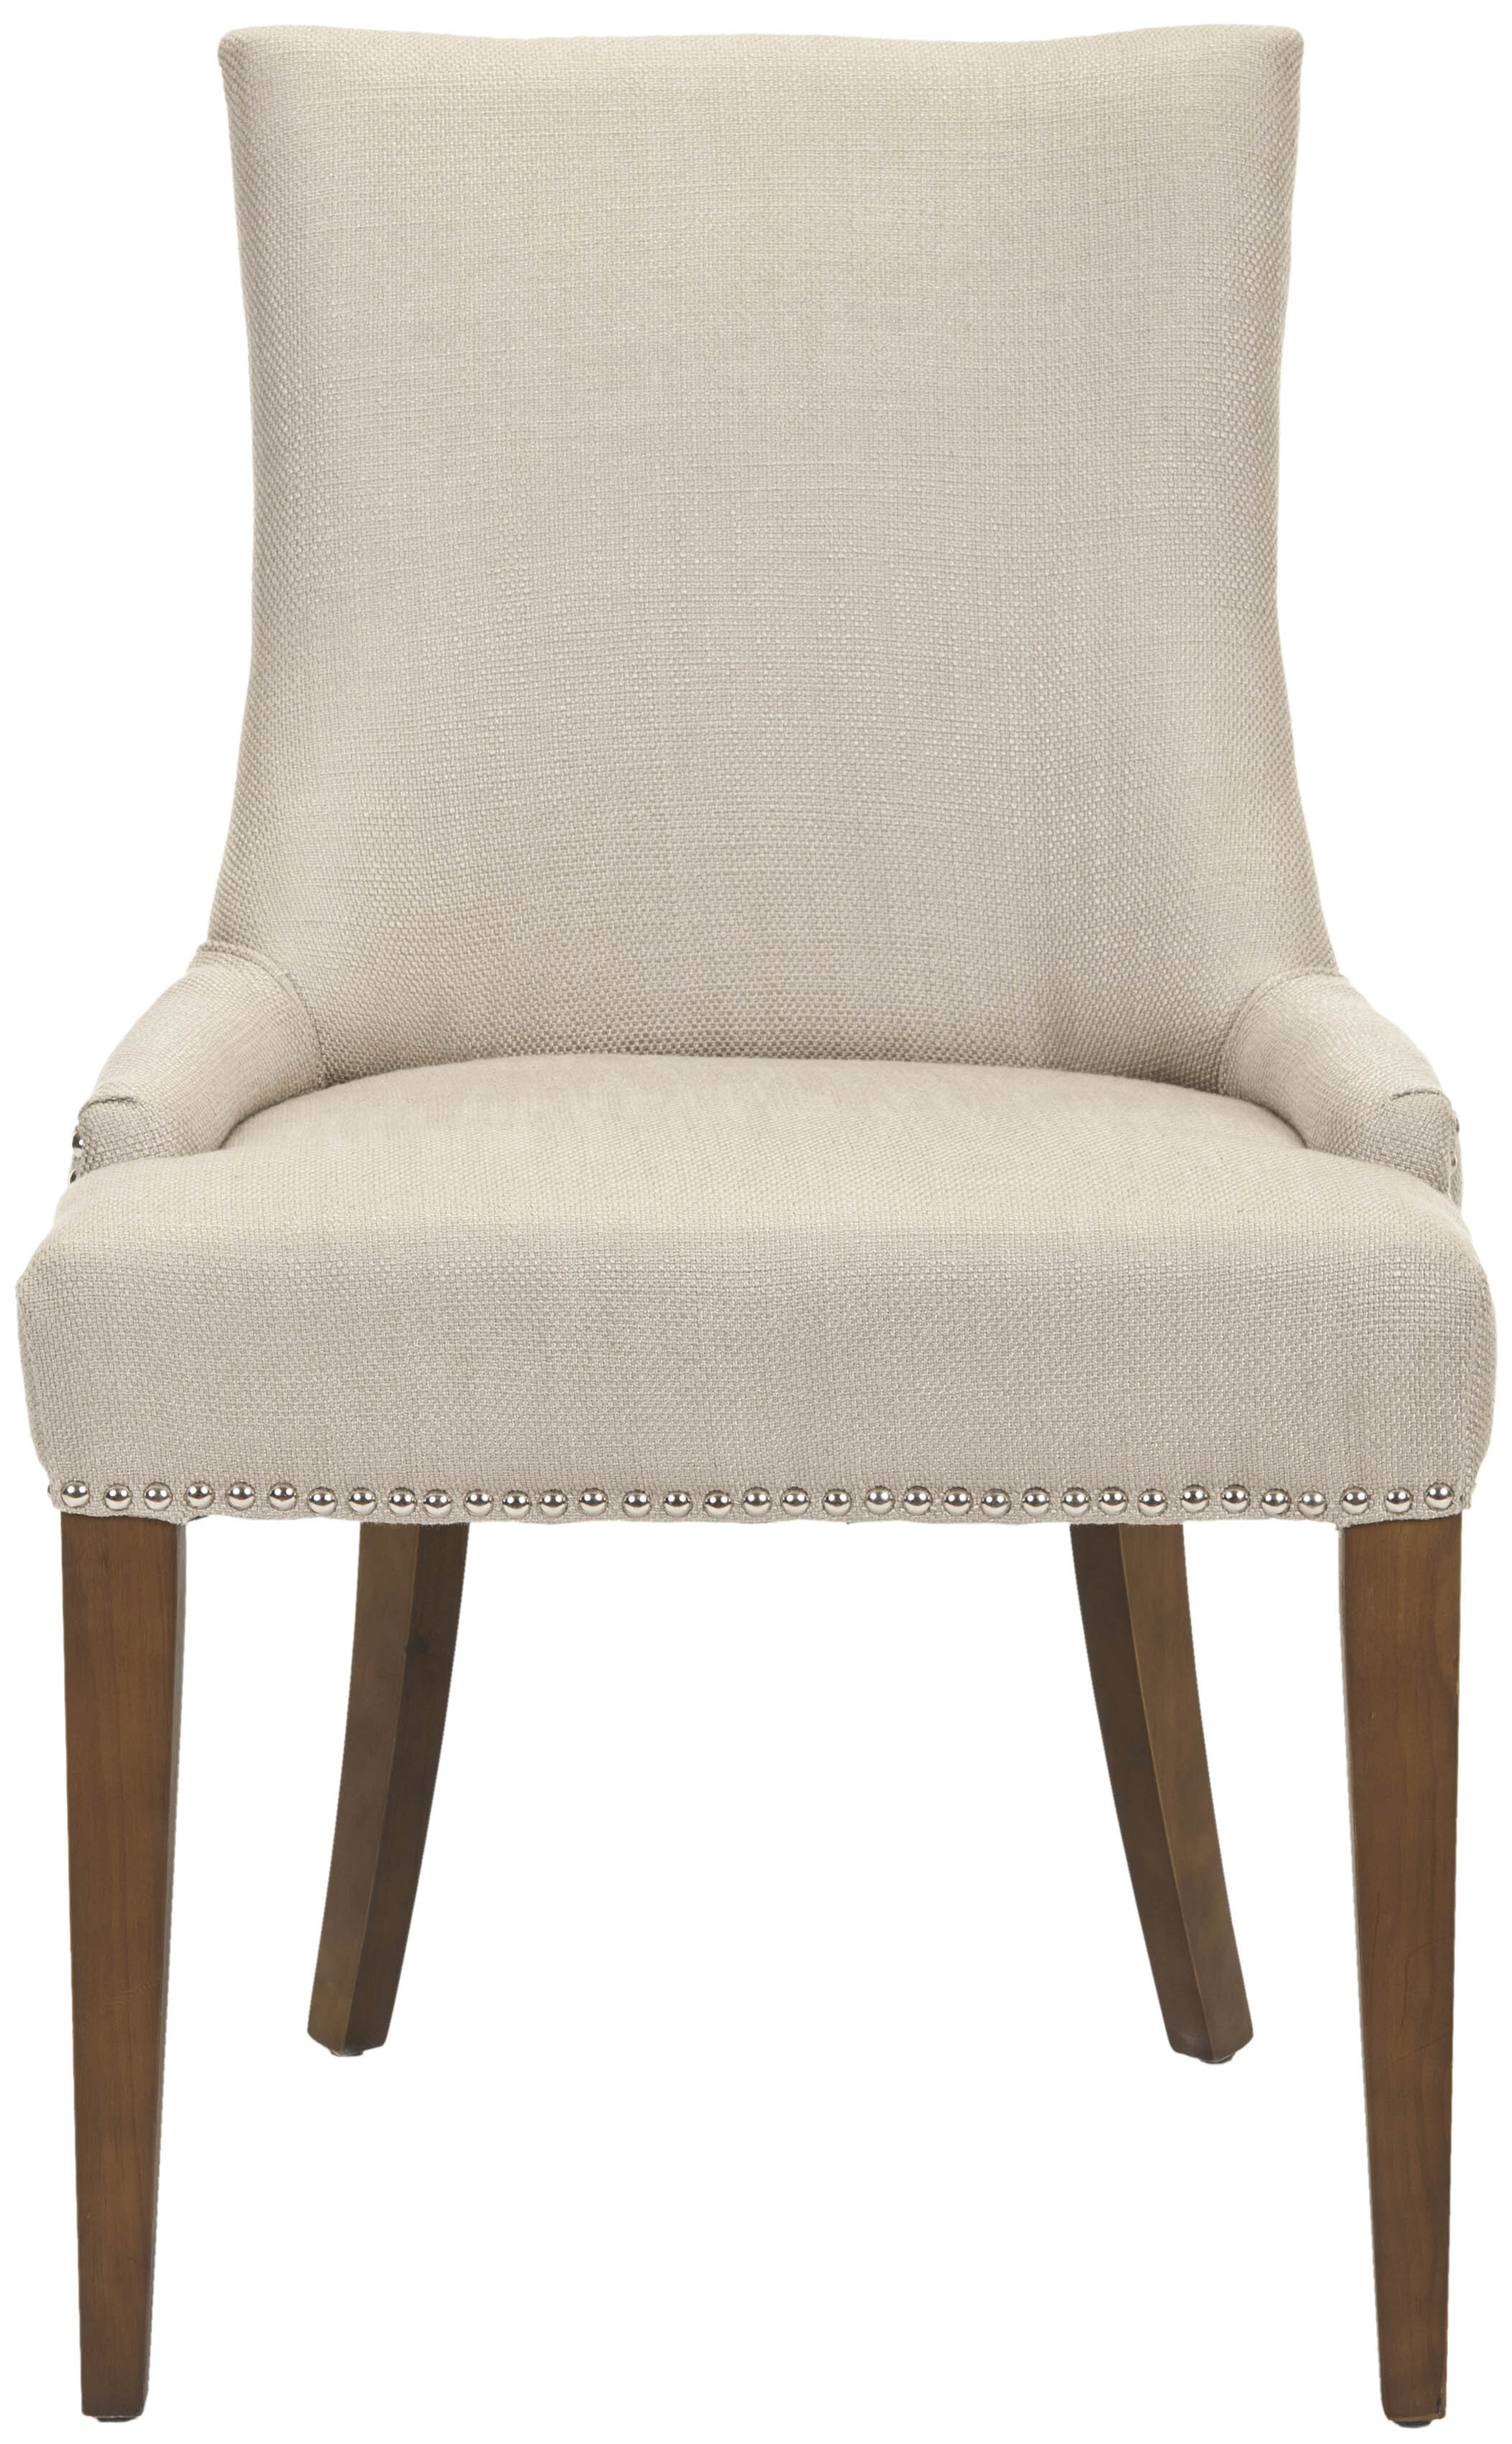 Brayden Studio Alpha Centauri Upholstered Dining Chair U0026 Reviews | Wayfair